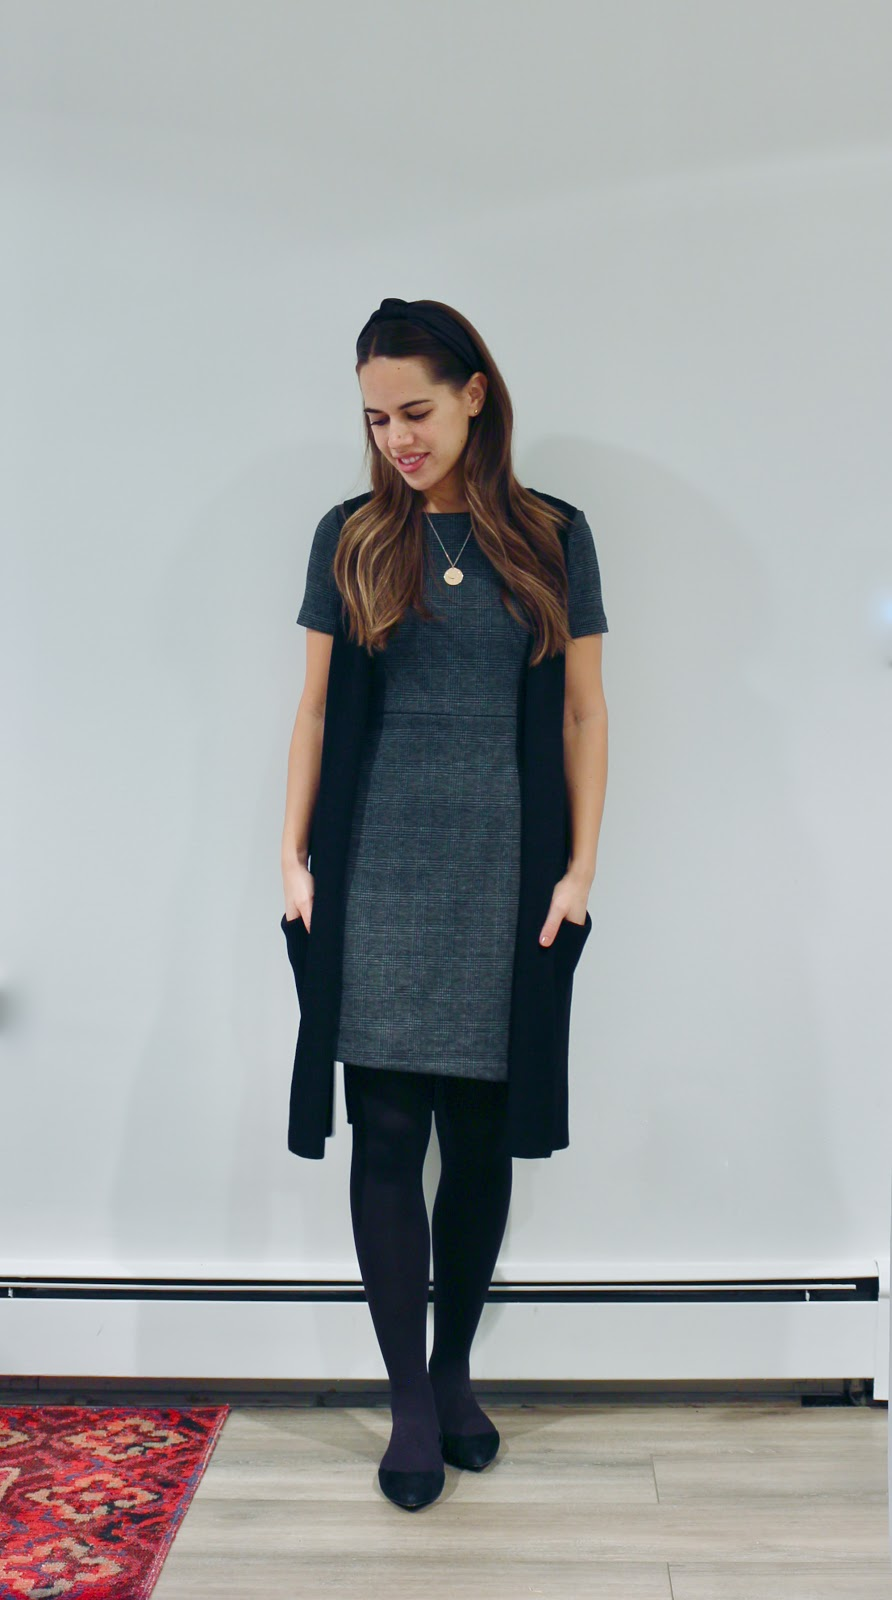 Jules in Flats - Plaid Shift Dress + Long Sweater Vest (Business Casual Winter Workwear on a Budget)